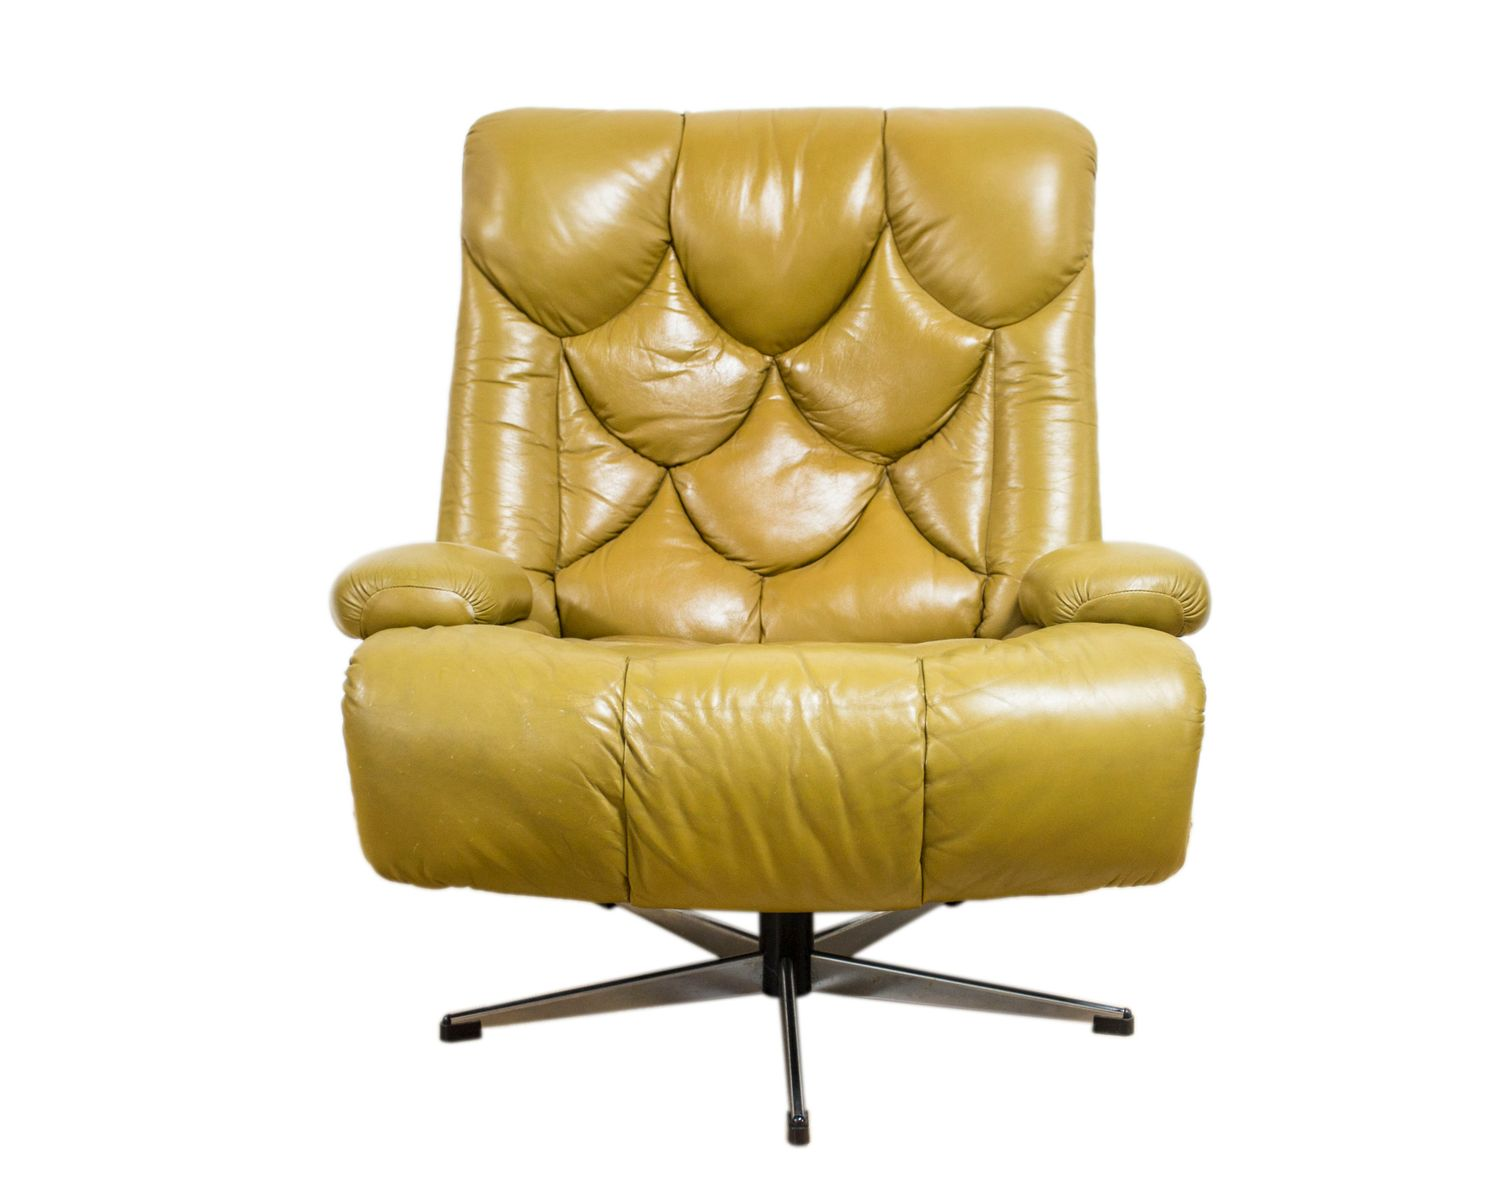 Vintage Danish Brown Leather Swivel Armchair for sale at Pamono